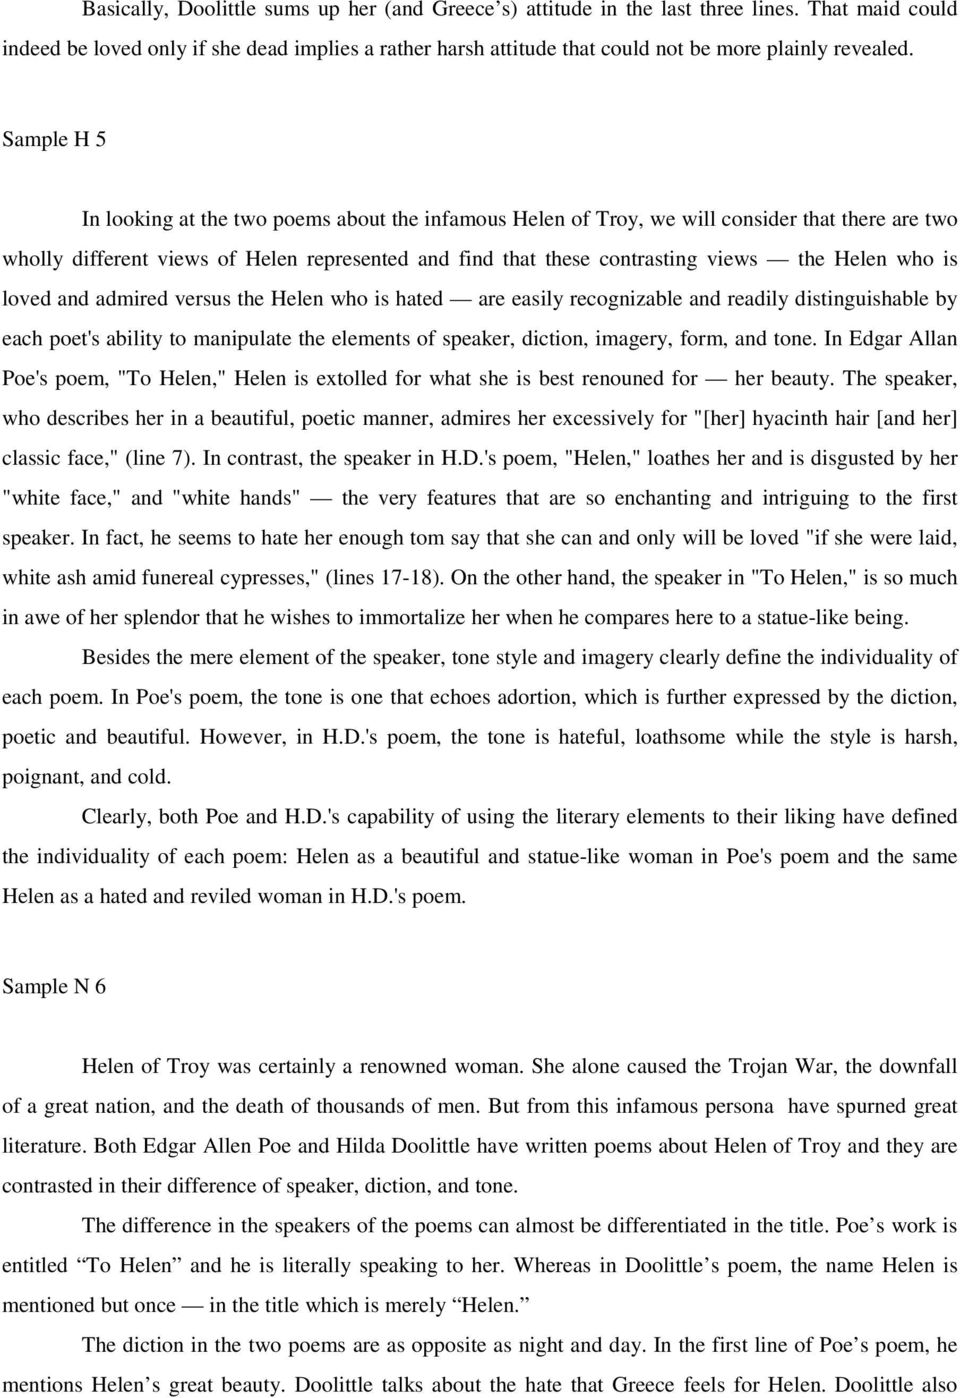 Sample H 5 In looking at the two poems about the infamous Helen of Troy, we will consider that there are two wholly different views of Helen represented and find that these contrasting views the